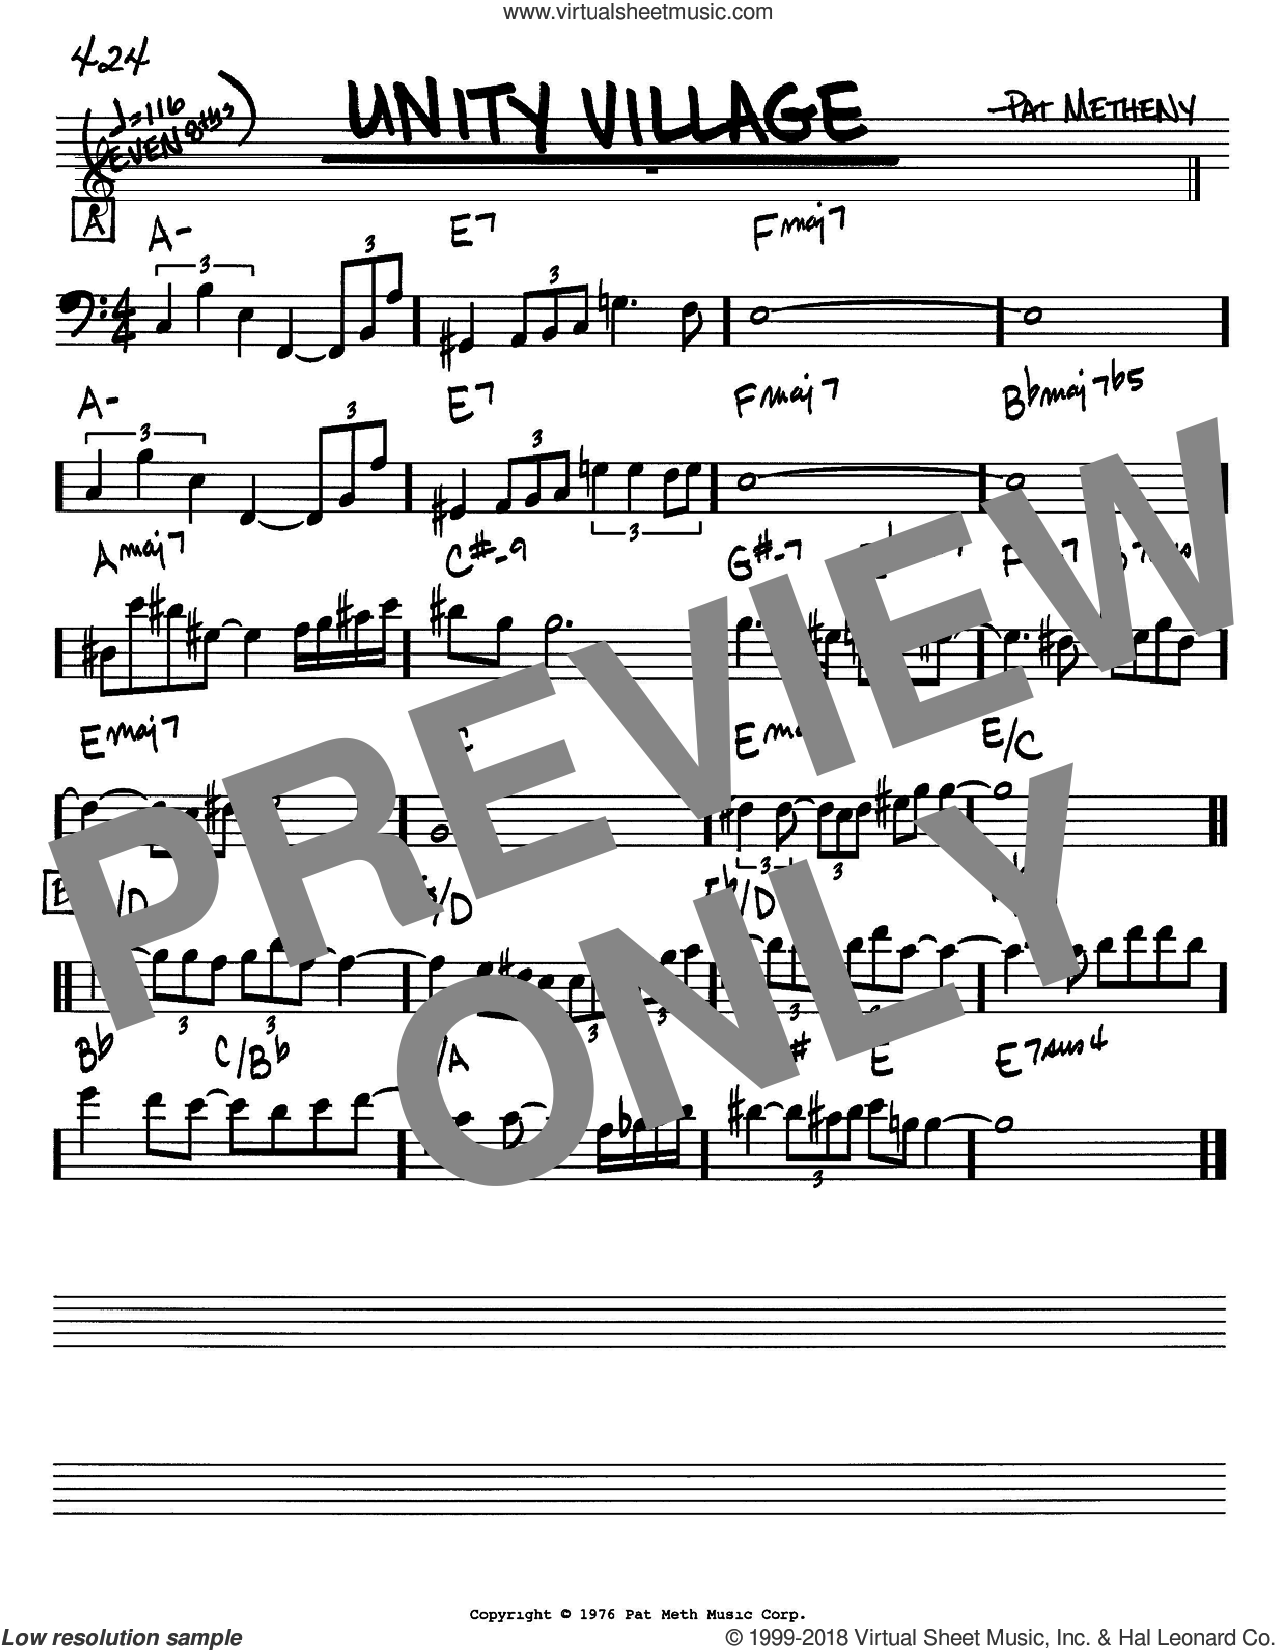 Metheny - Unity Village sheet music (real book - melody and chords) (bass  clef)